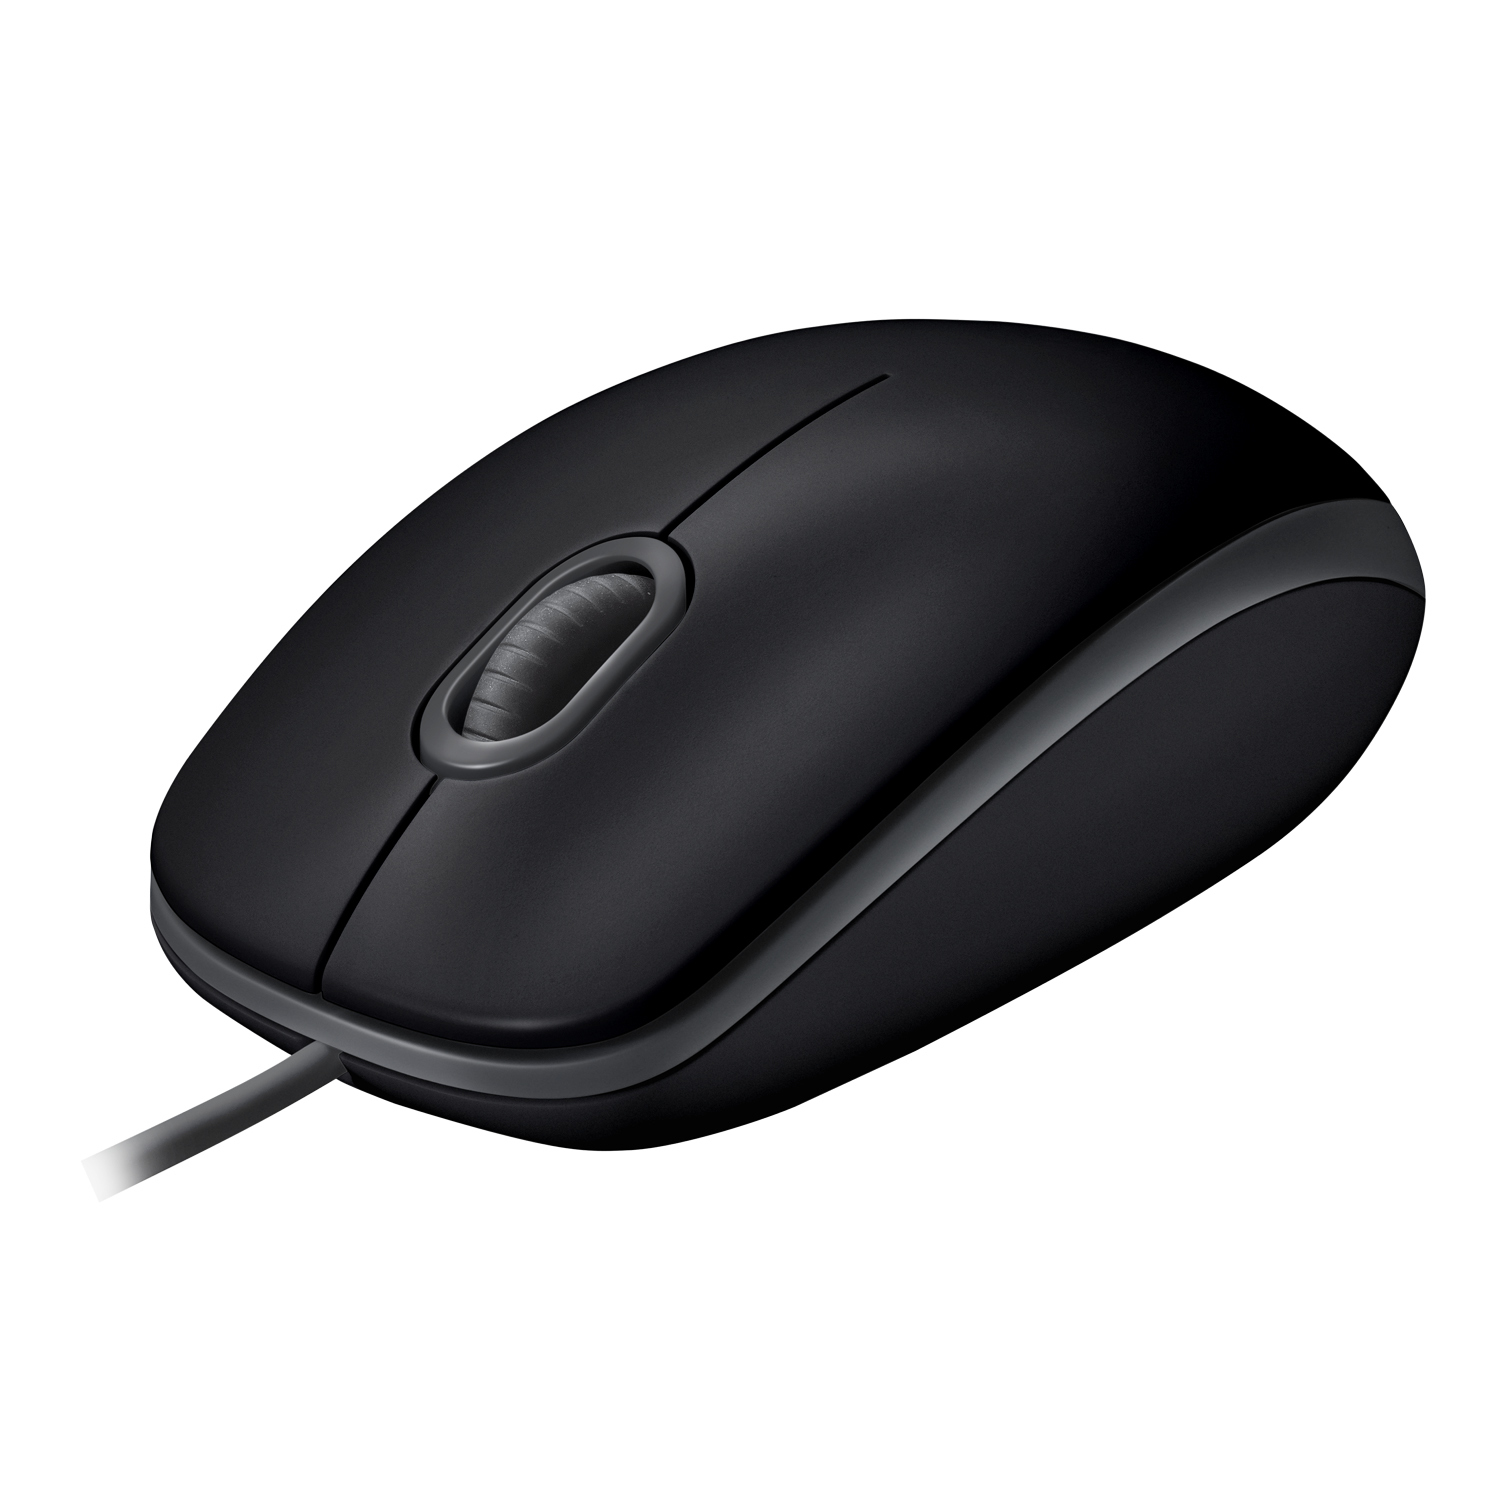 LOGITECH 910-005508 B110 MICE USB OPTICAL 1000 DPI AMBIDEXTROUS BLACK